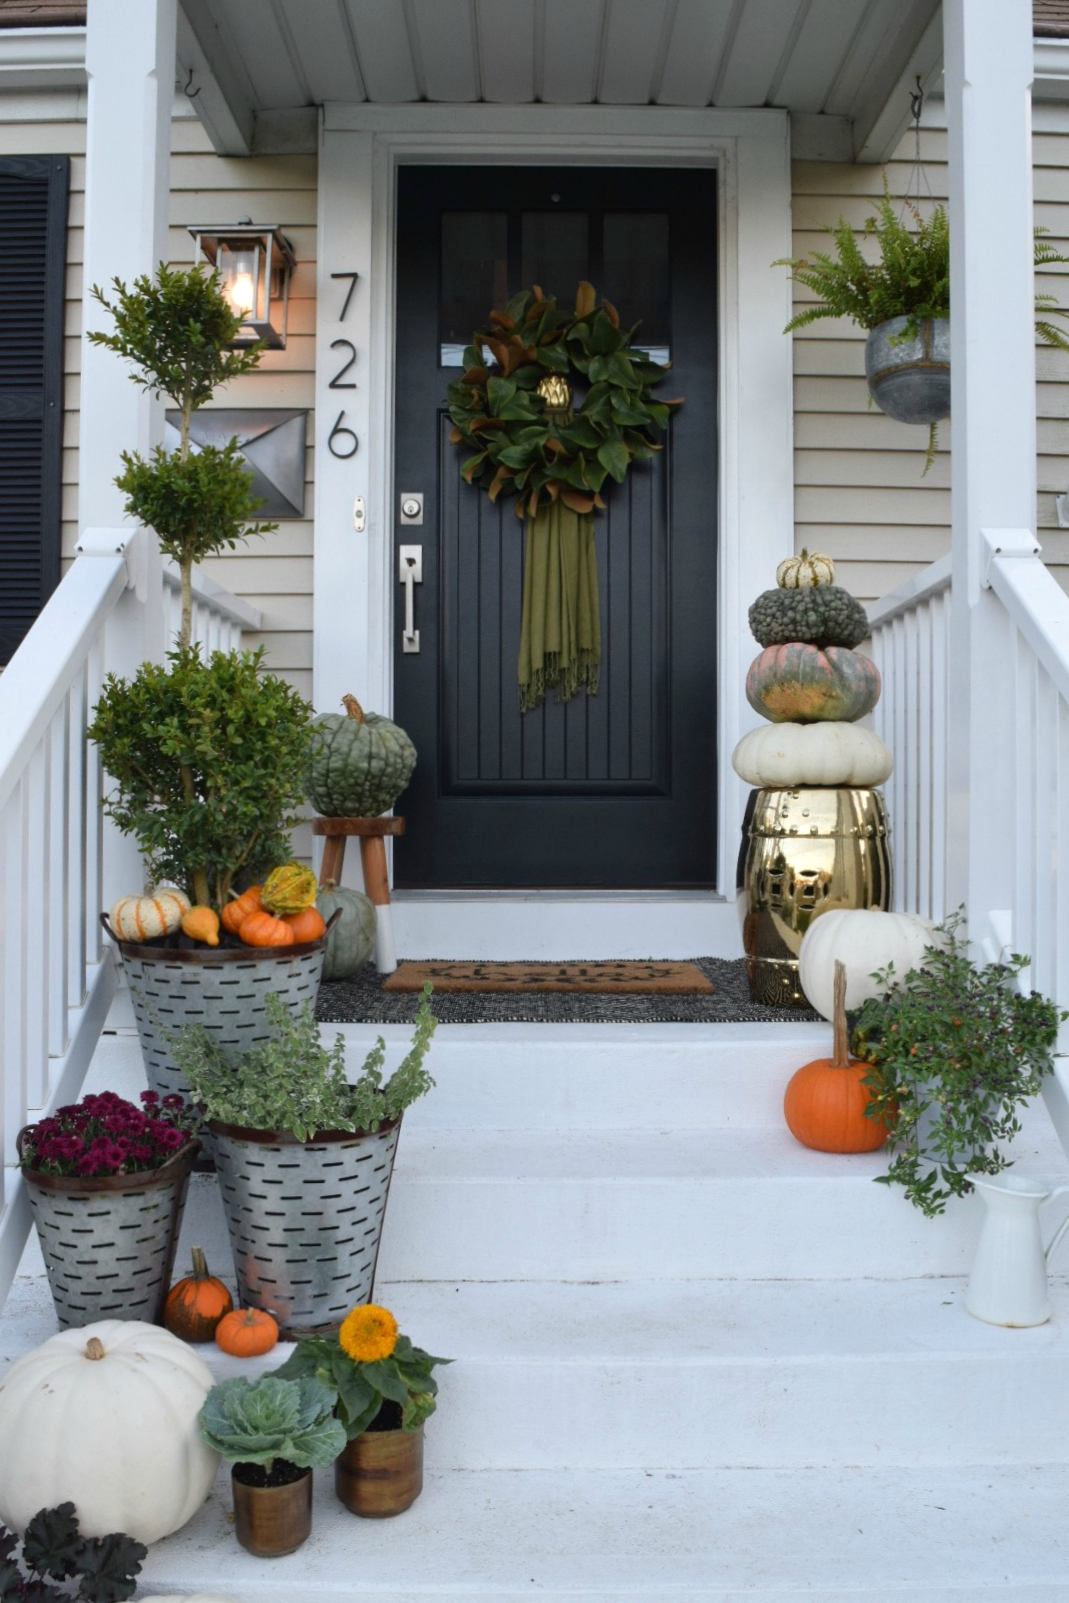 Fall Front Porch Decor- Rich Colors and all the Pumpkins